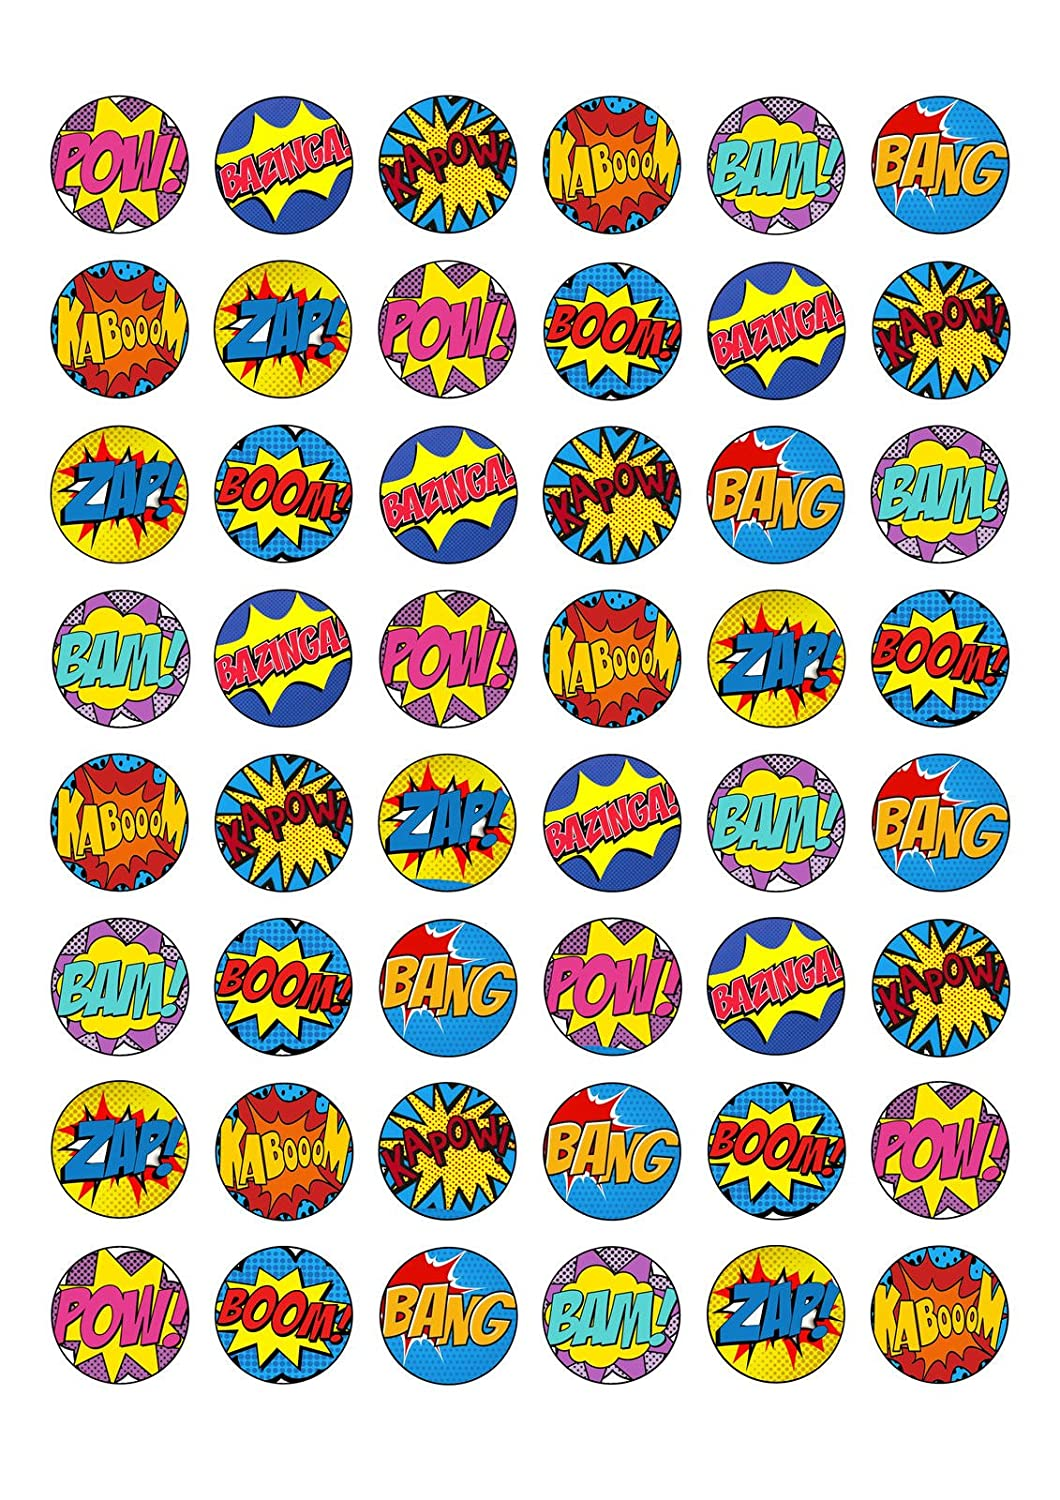 48 Edible Wafer Paper Superhero Retro Pow Zap Comic Book Style Cake Toppers Decorations Top That